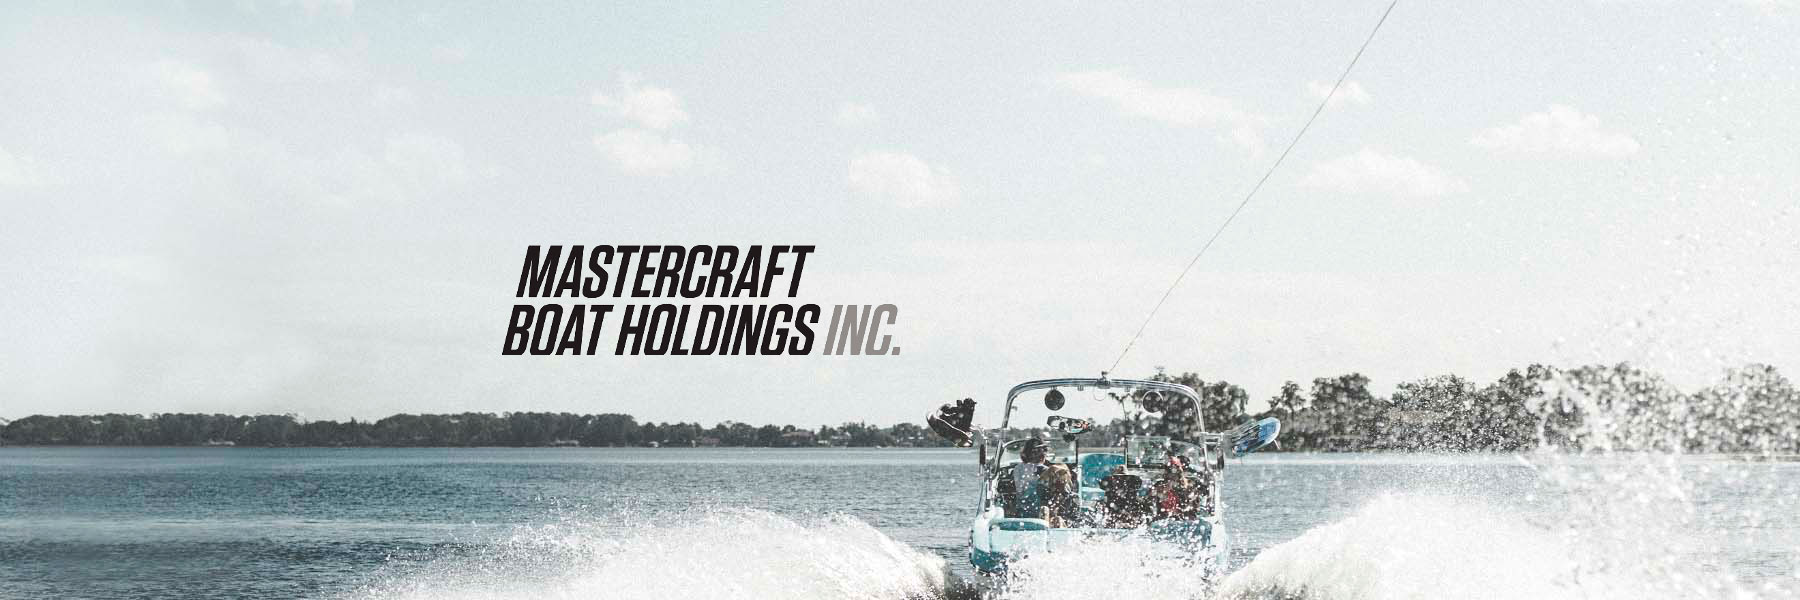 mastercraft boat holdings inc hero banner